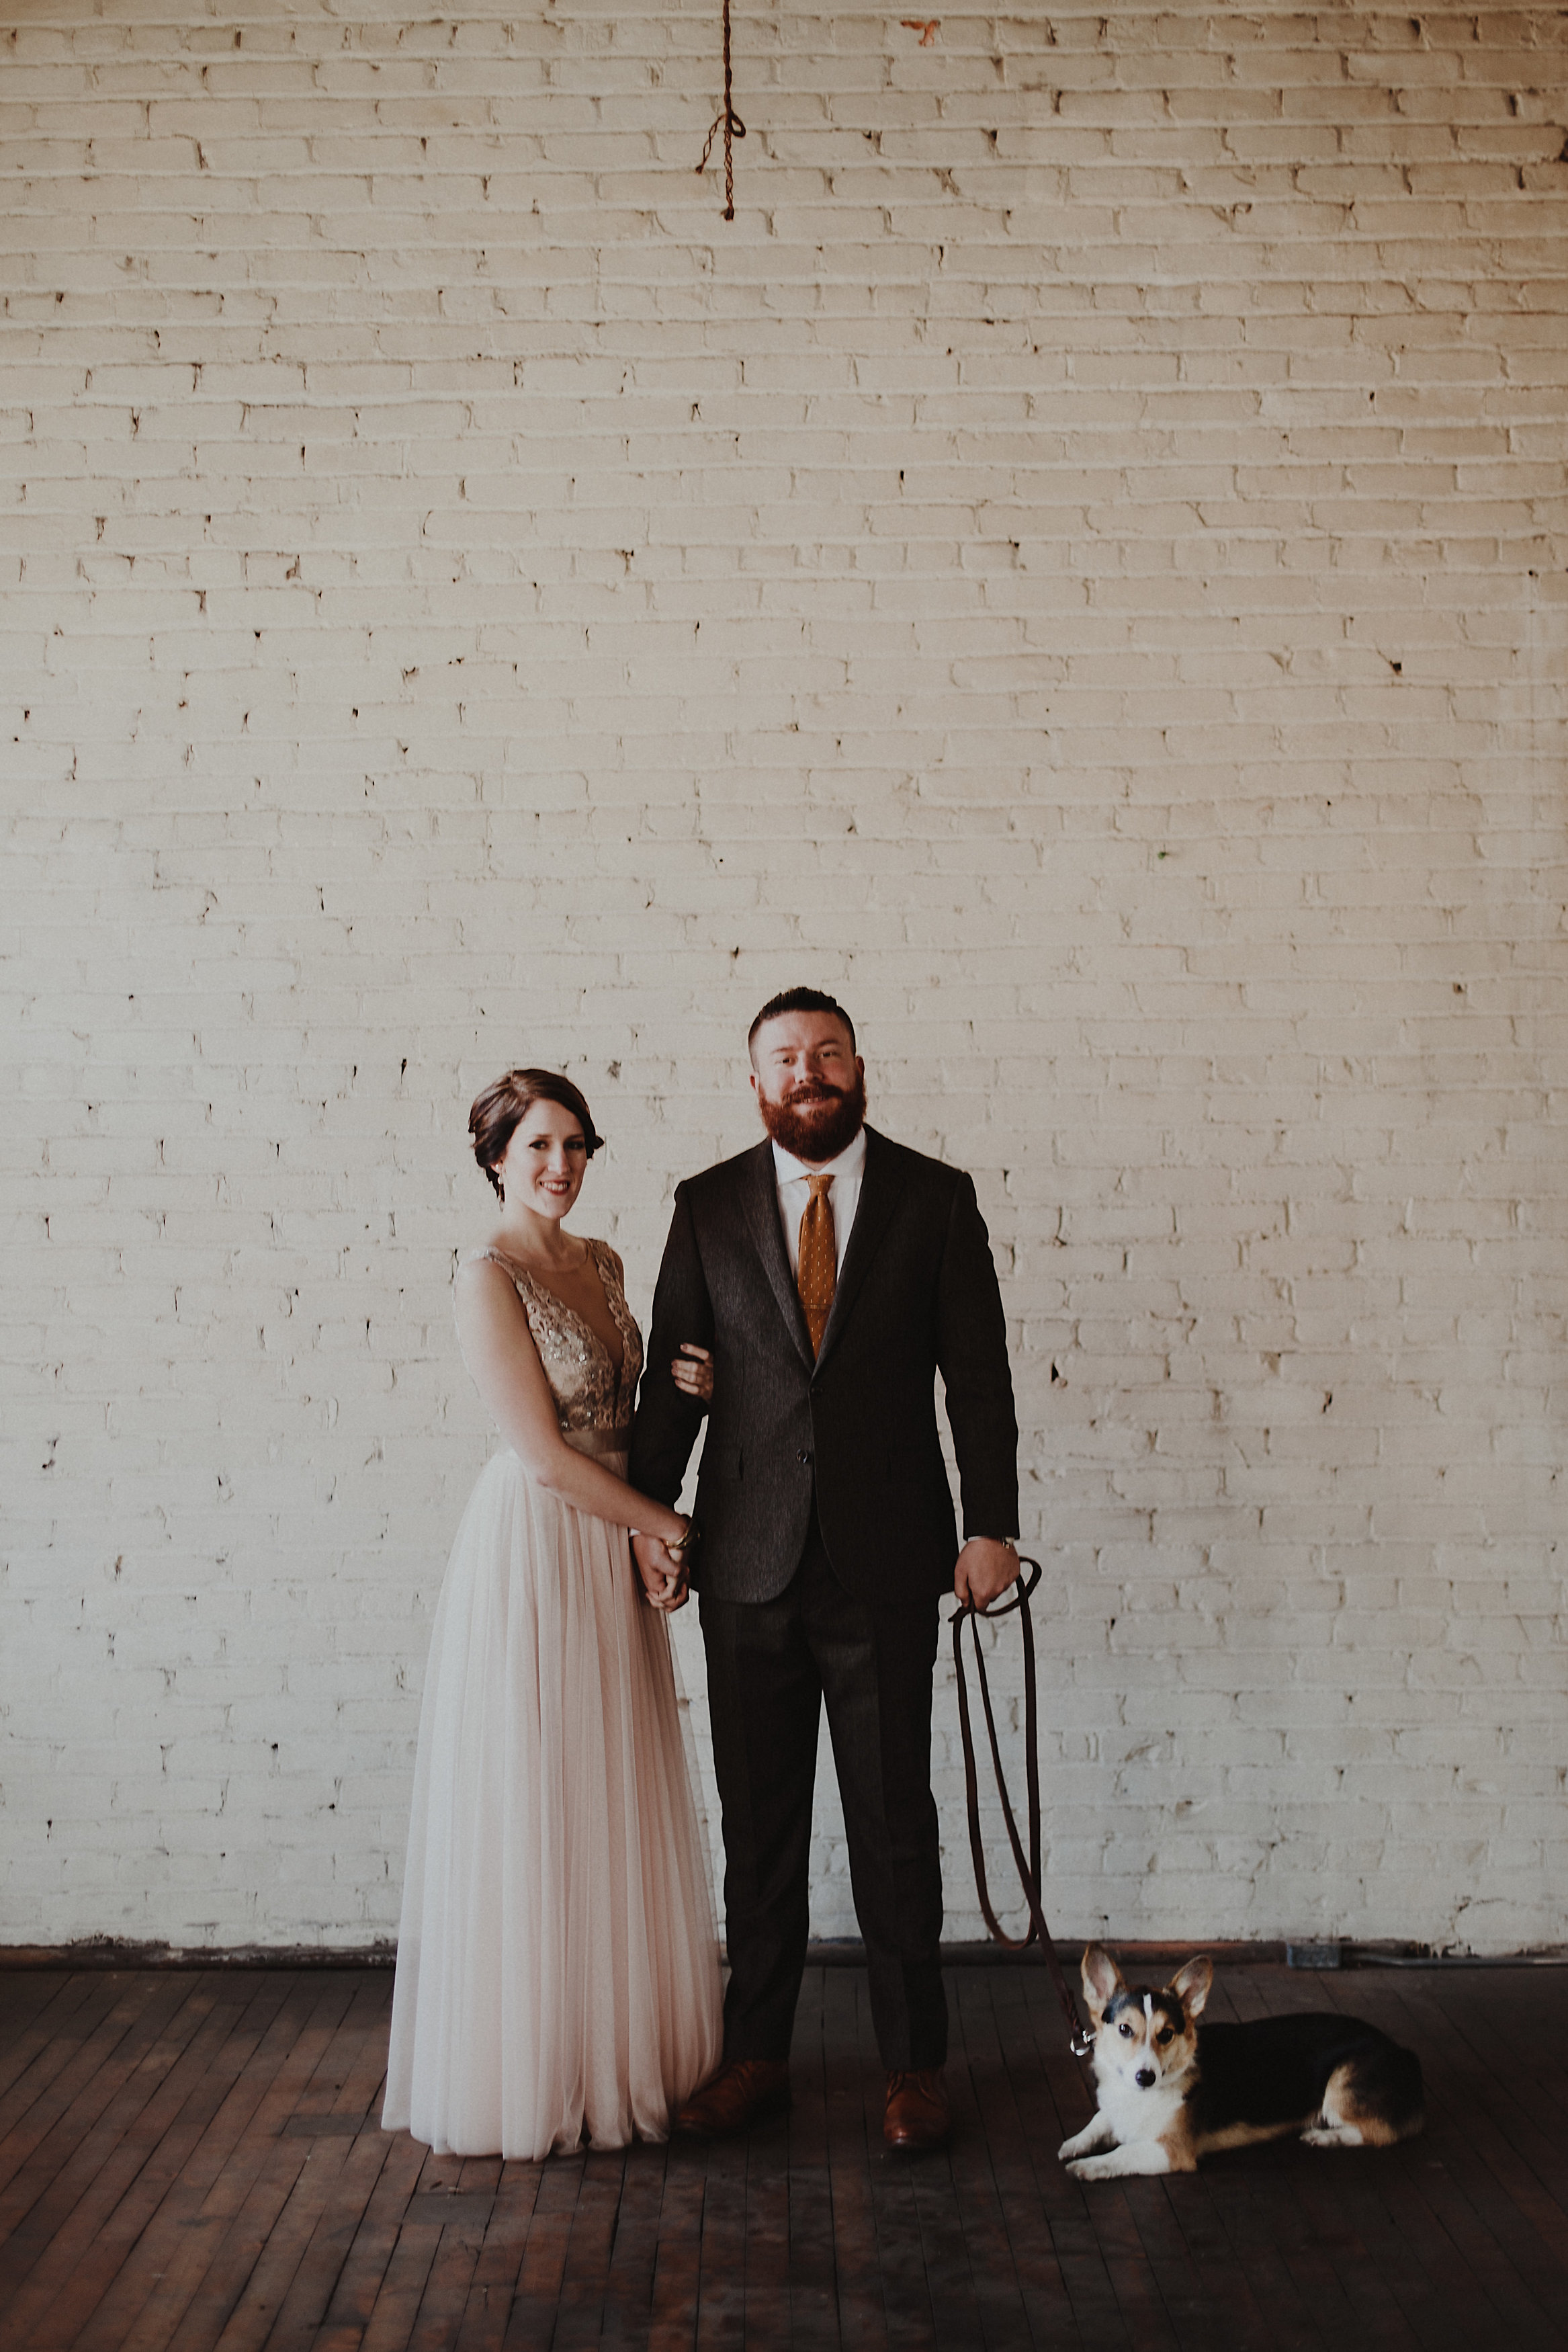 Unique warehouse wedding in downtown Toledo.